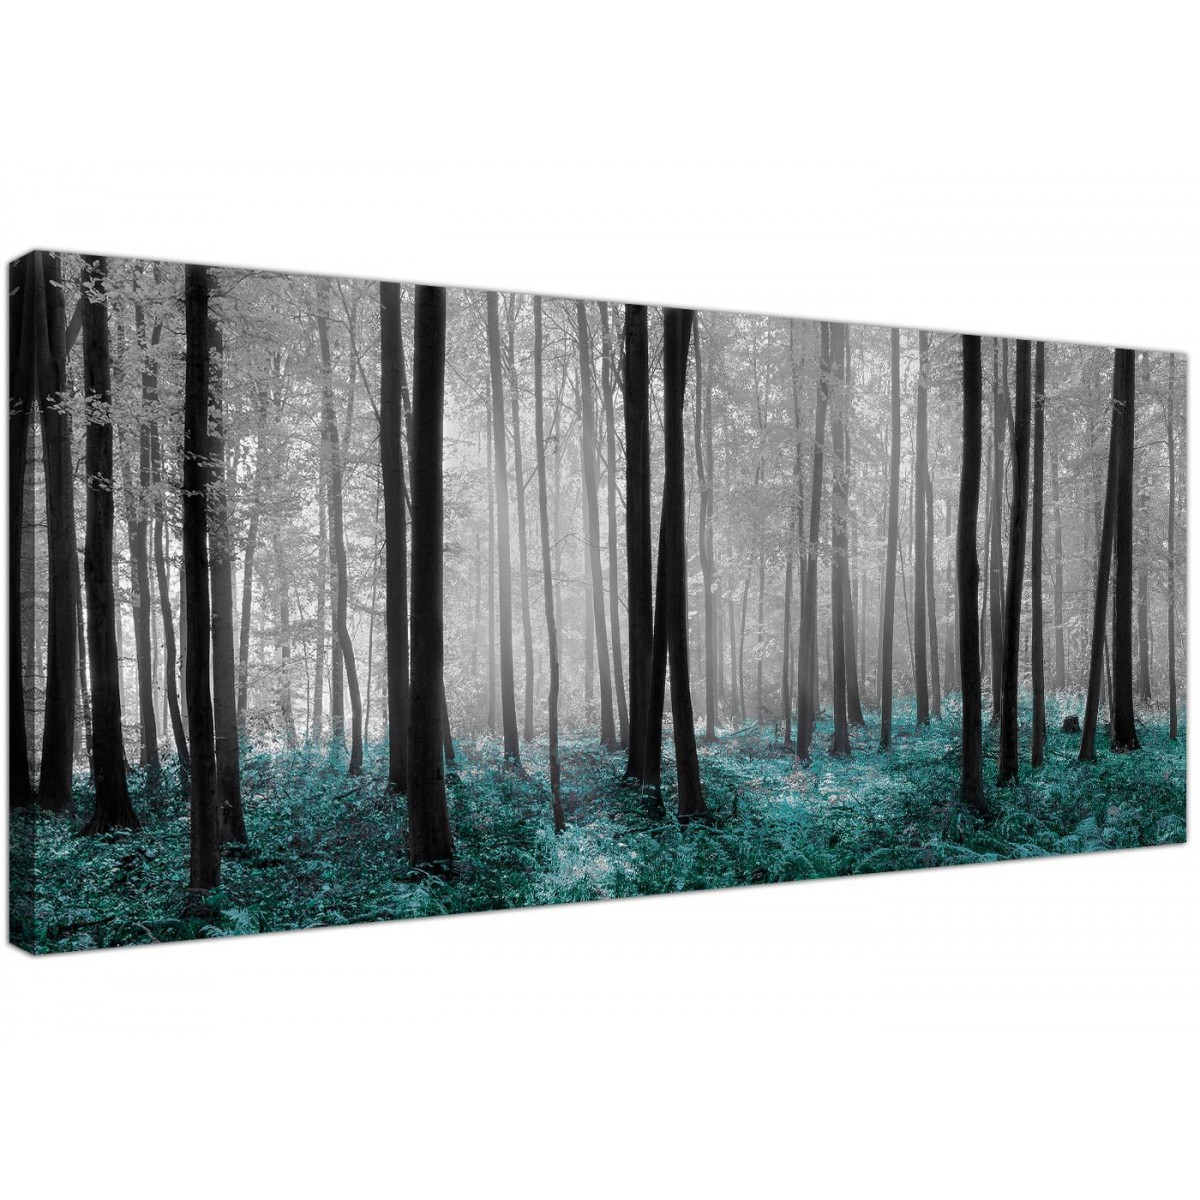 Black white teal trees canvas wall art forest scene for Black white canvas paintings